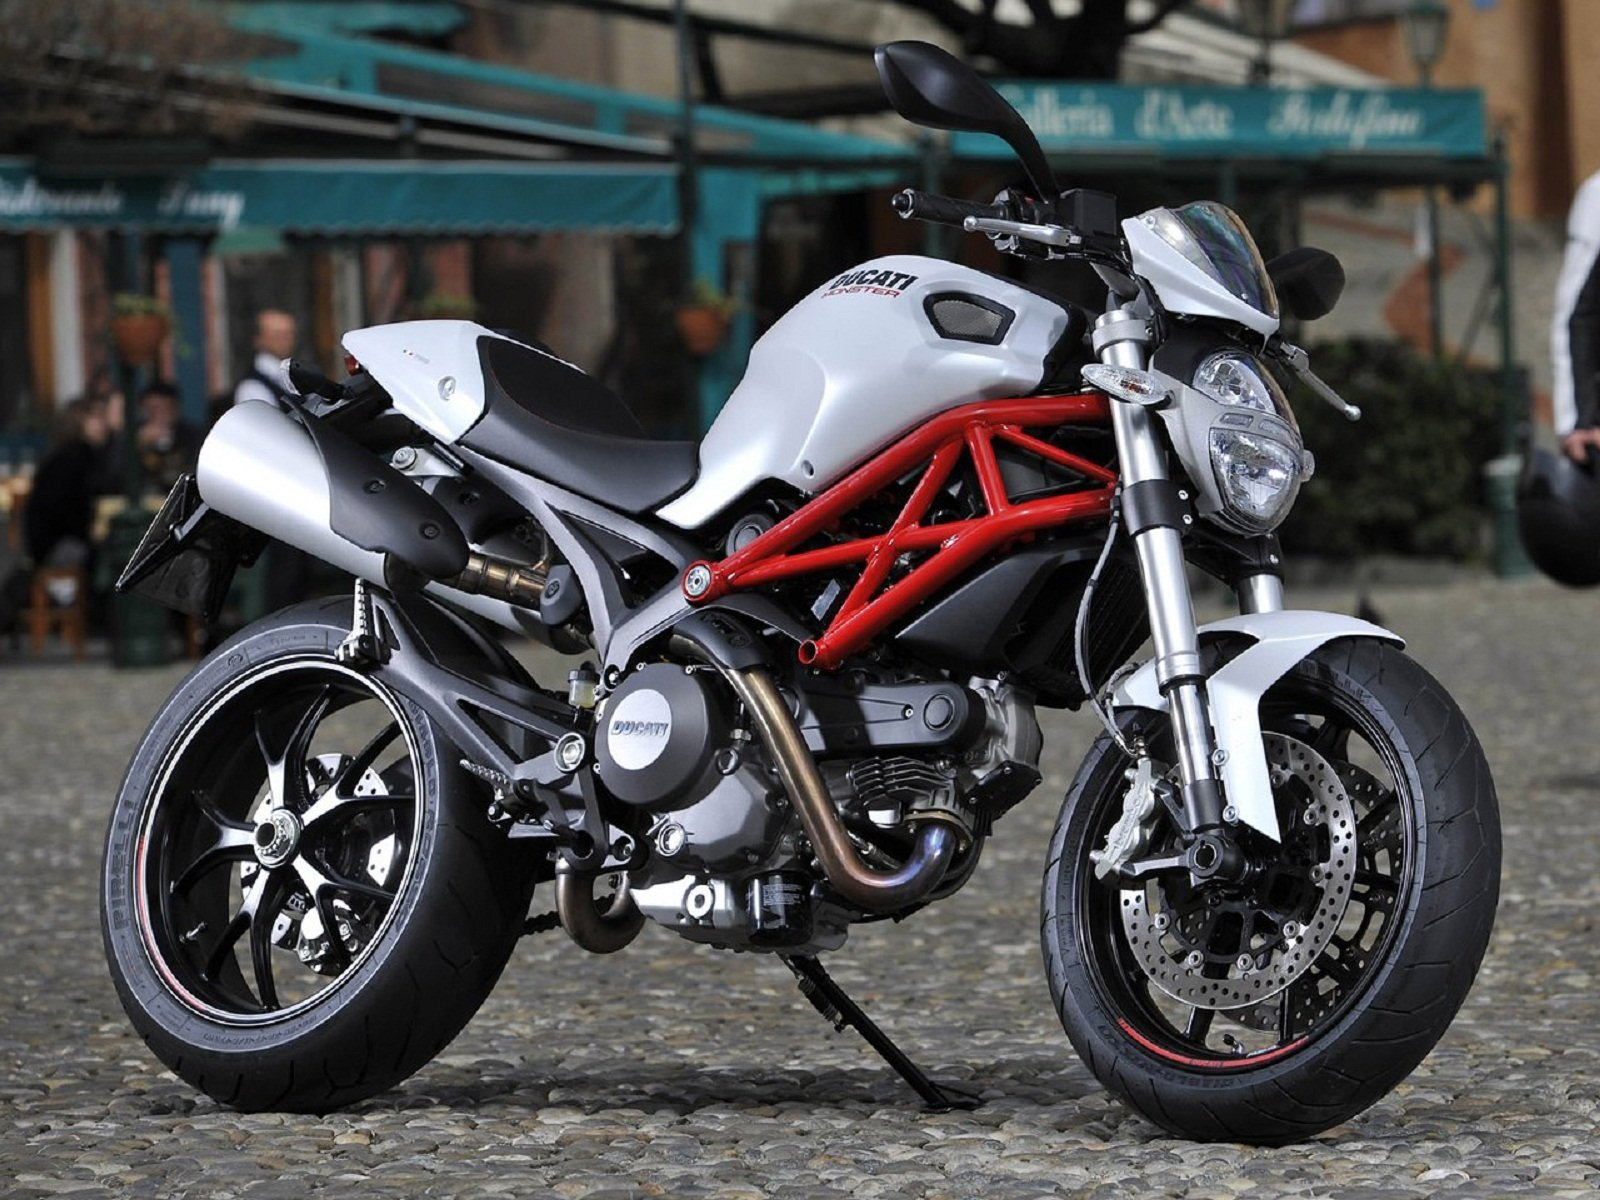 2012 ducati monster 796 picture 440253 motorcycle review top speed. Black Bedroom Furniture Sets. Home Design Ideas